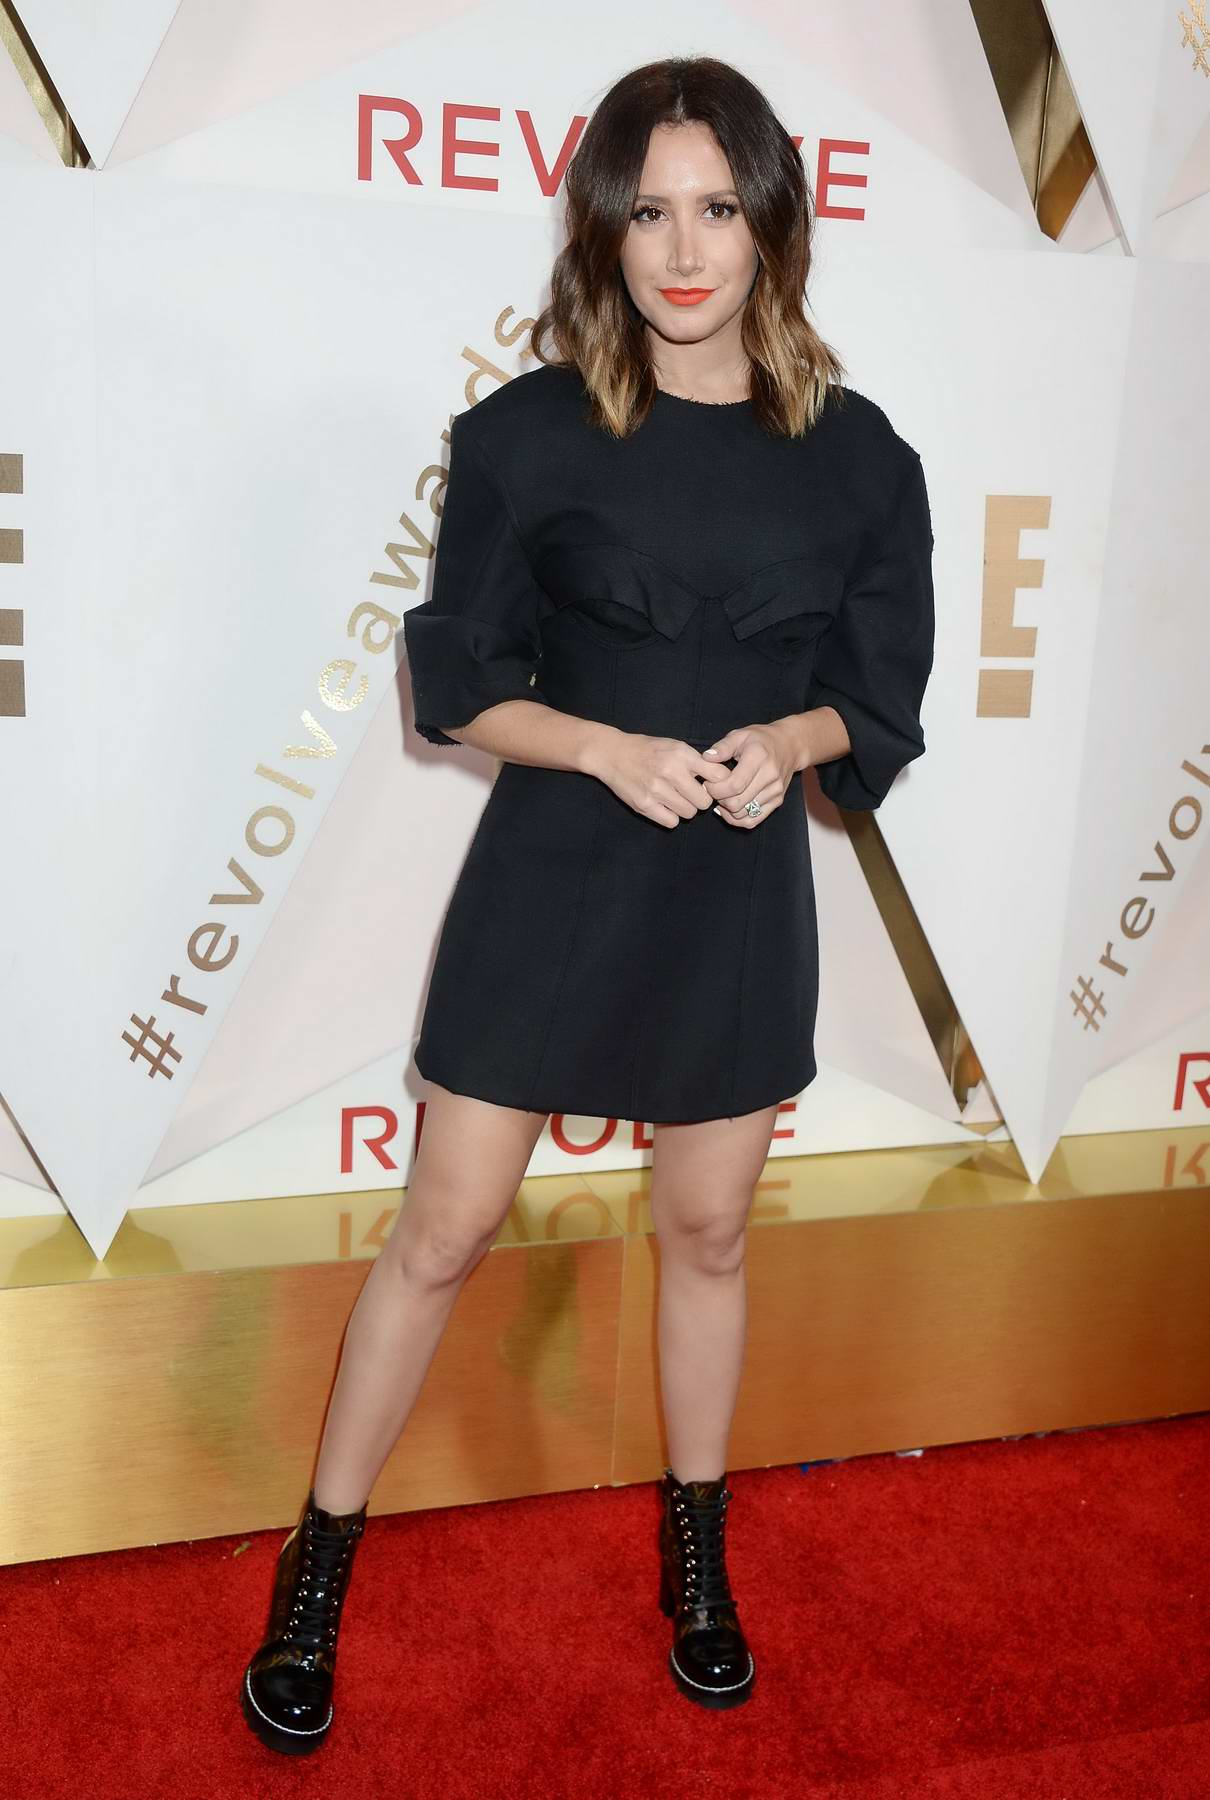 Ashley Tisdale attends the REVOLVE Awards in Hollywood, Los Angeles